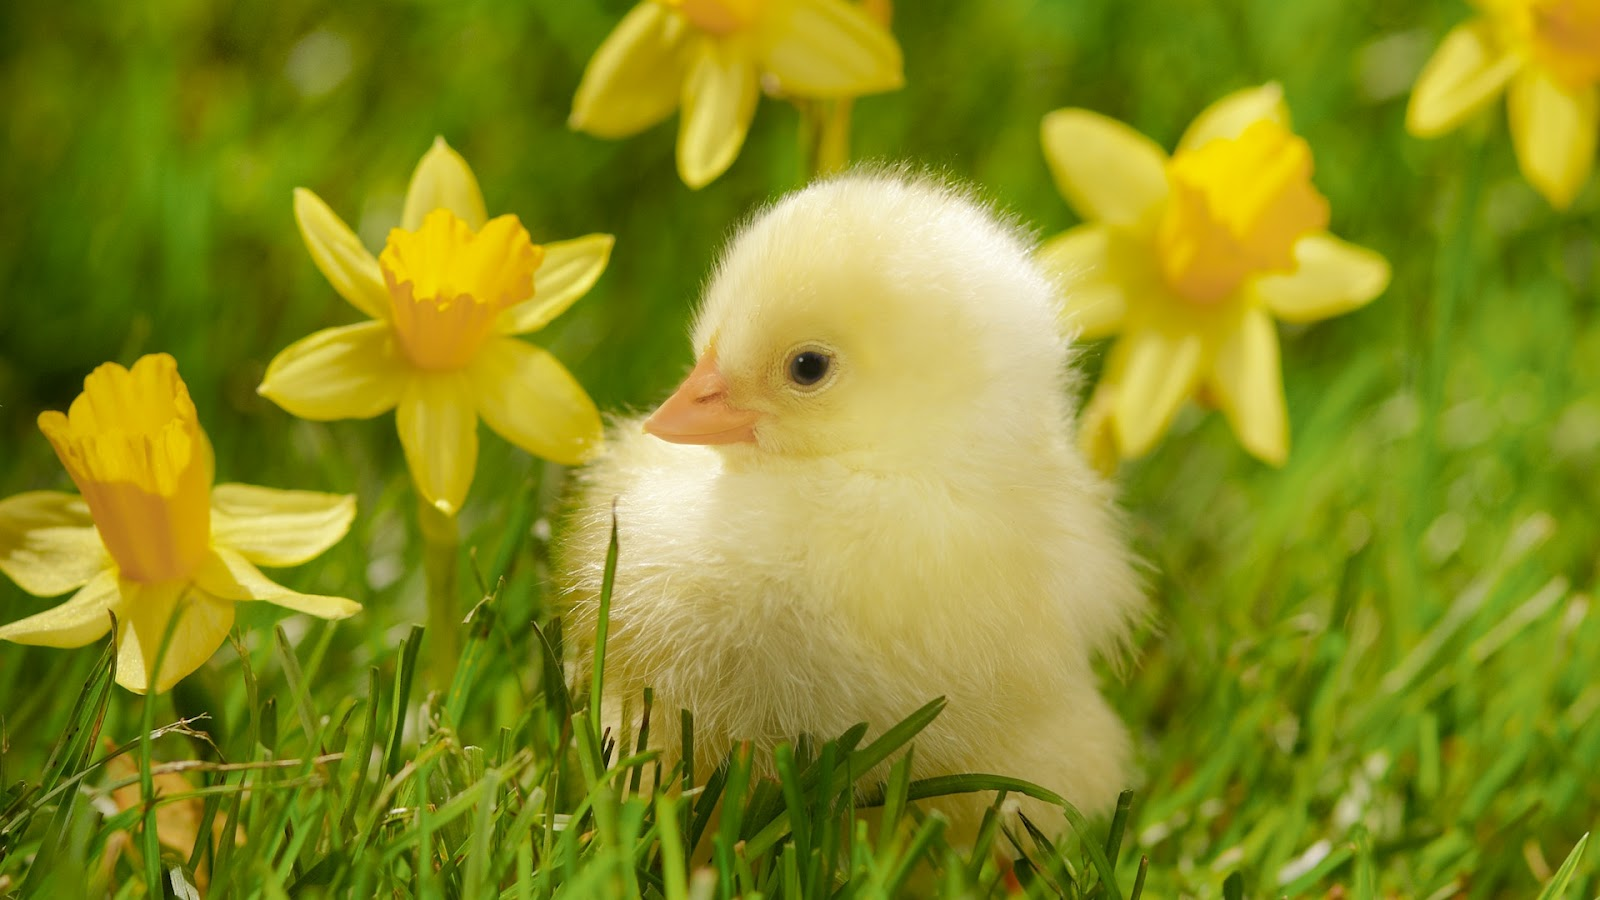 beautiful chick in grass download free hd wallpapers of animal baby